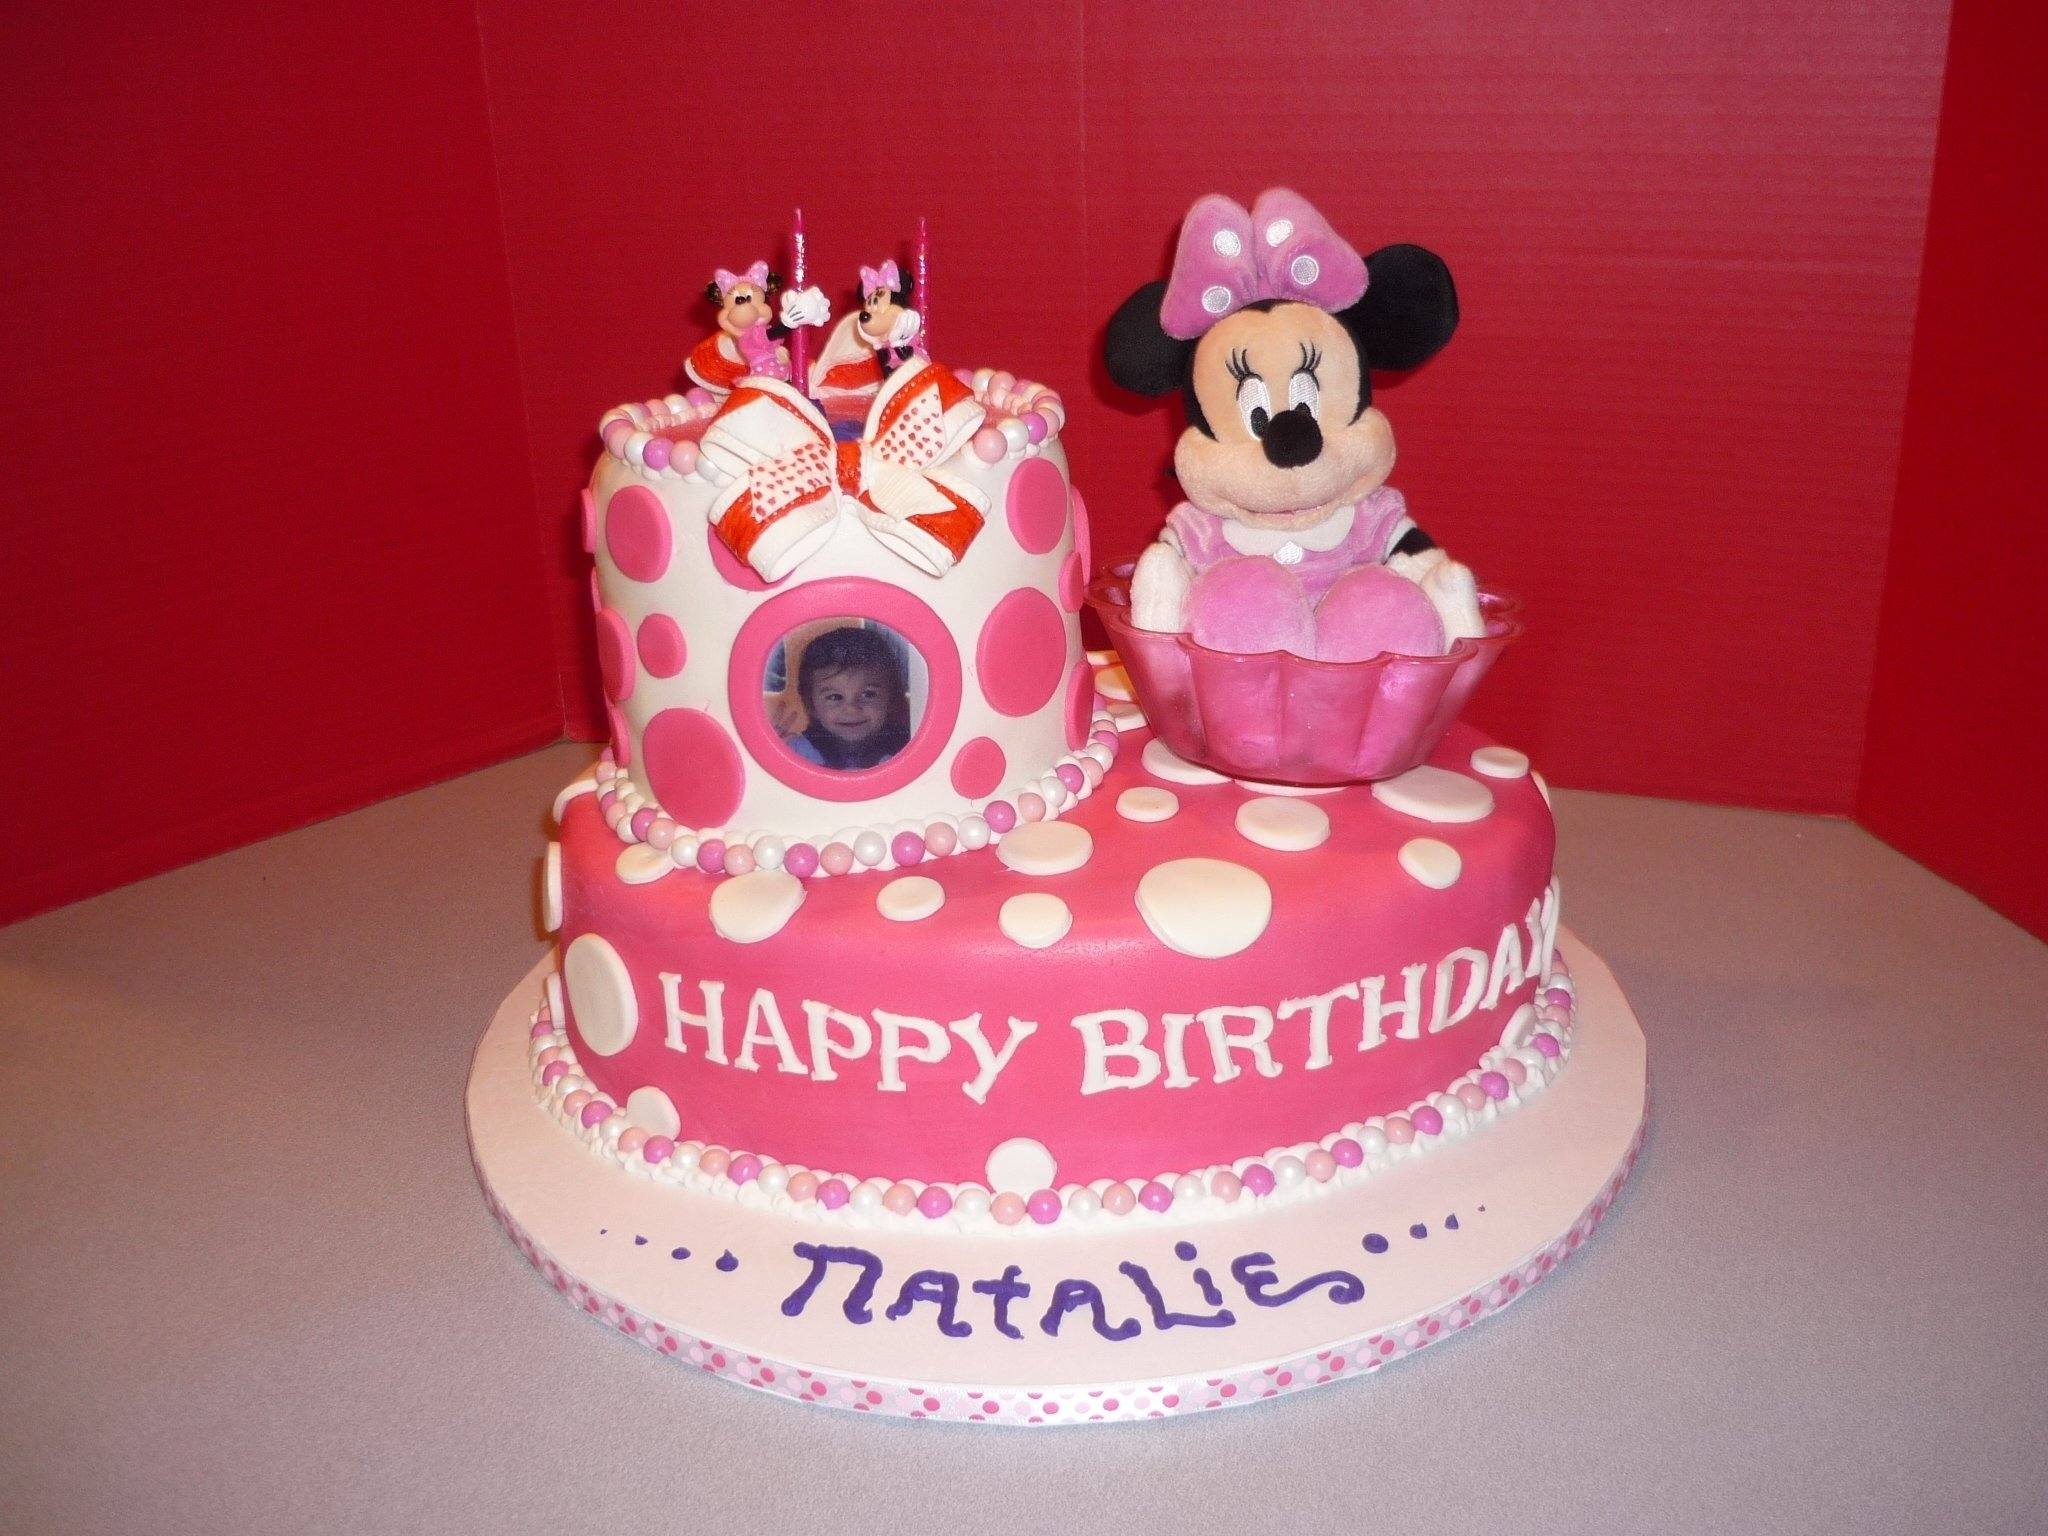 10 Ideal Minnie Mouse Birthday Cake Ideas minnie mouse birthday cakes plus minnie mouse cake ideas plus for